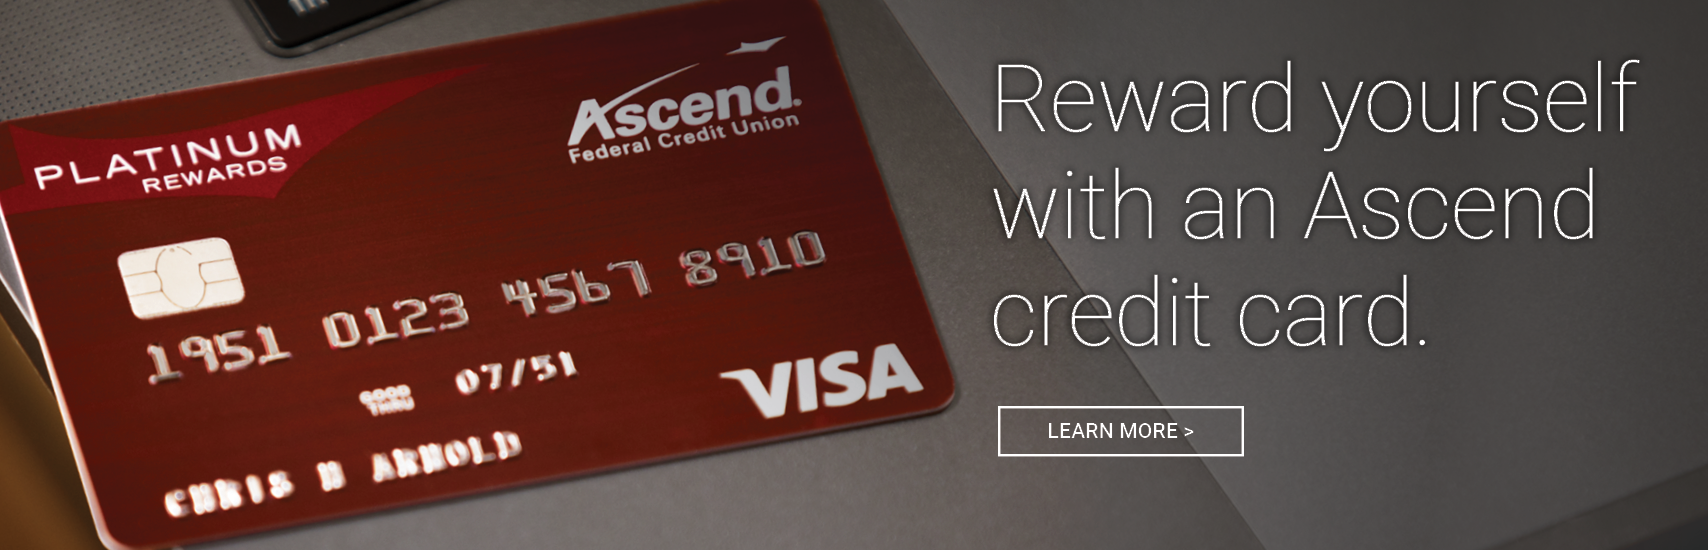 Red Ascend Visa Platinum Rewards card on a gray background